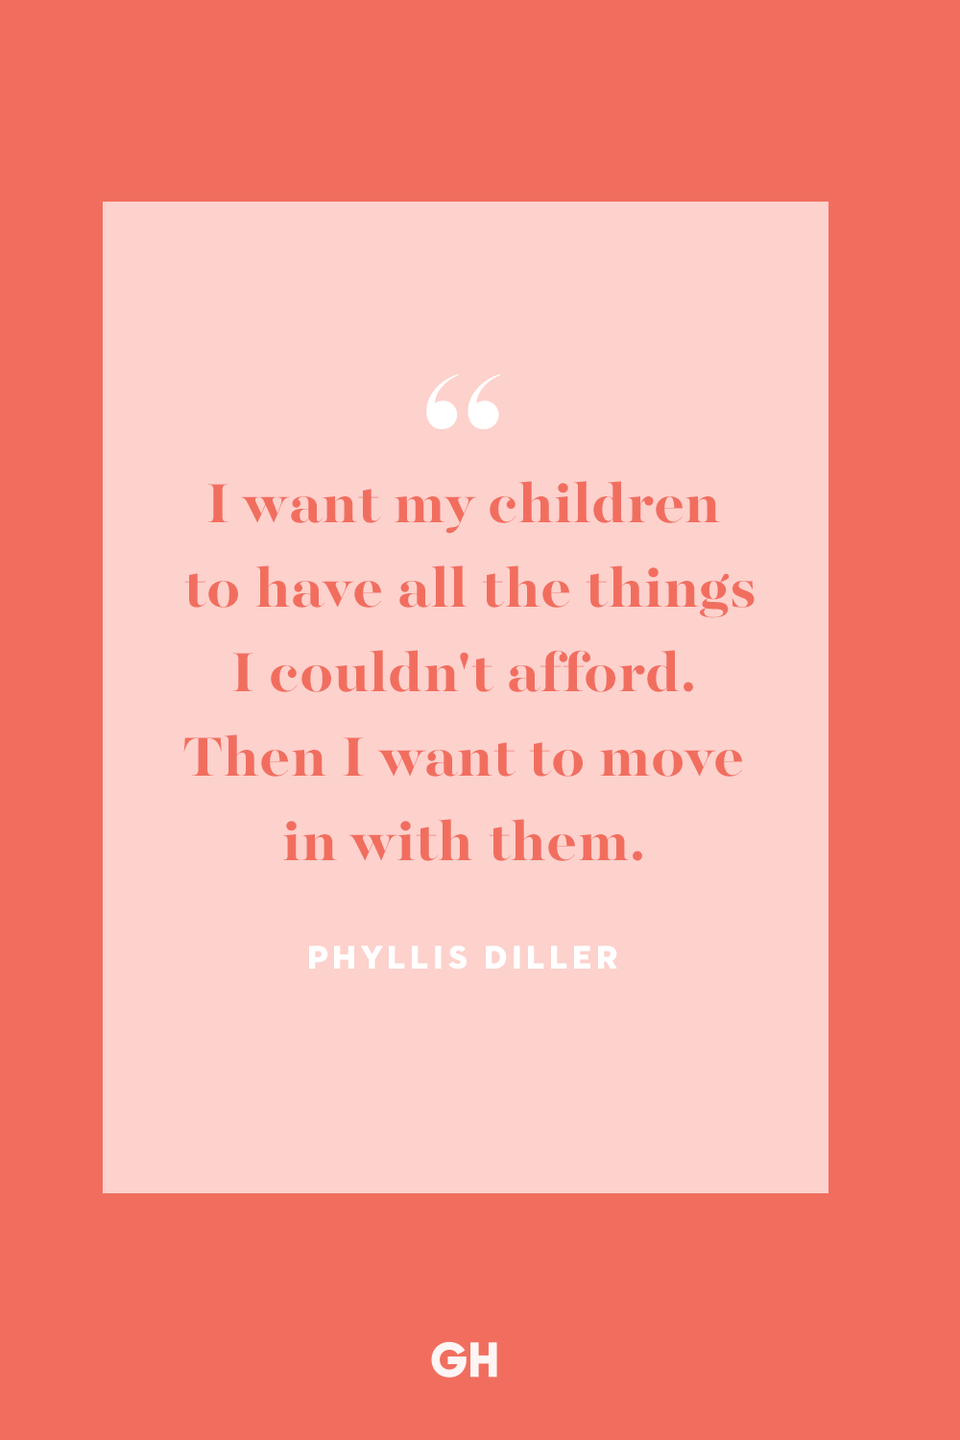 <p>I want my children to have all the things I couldn't afford. Then I want to move in with them.</p>